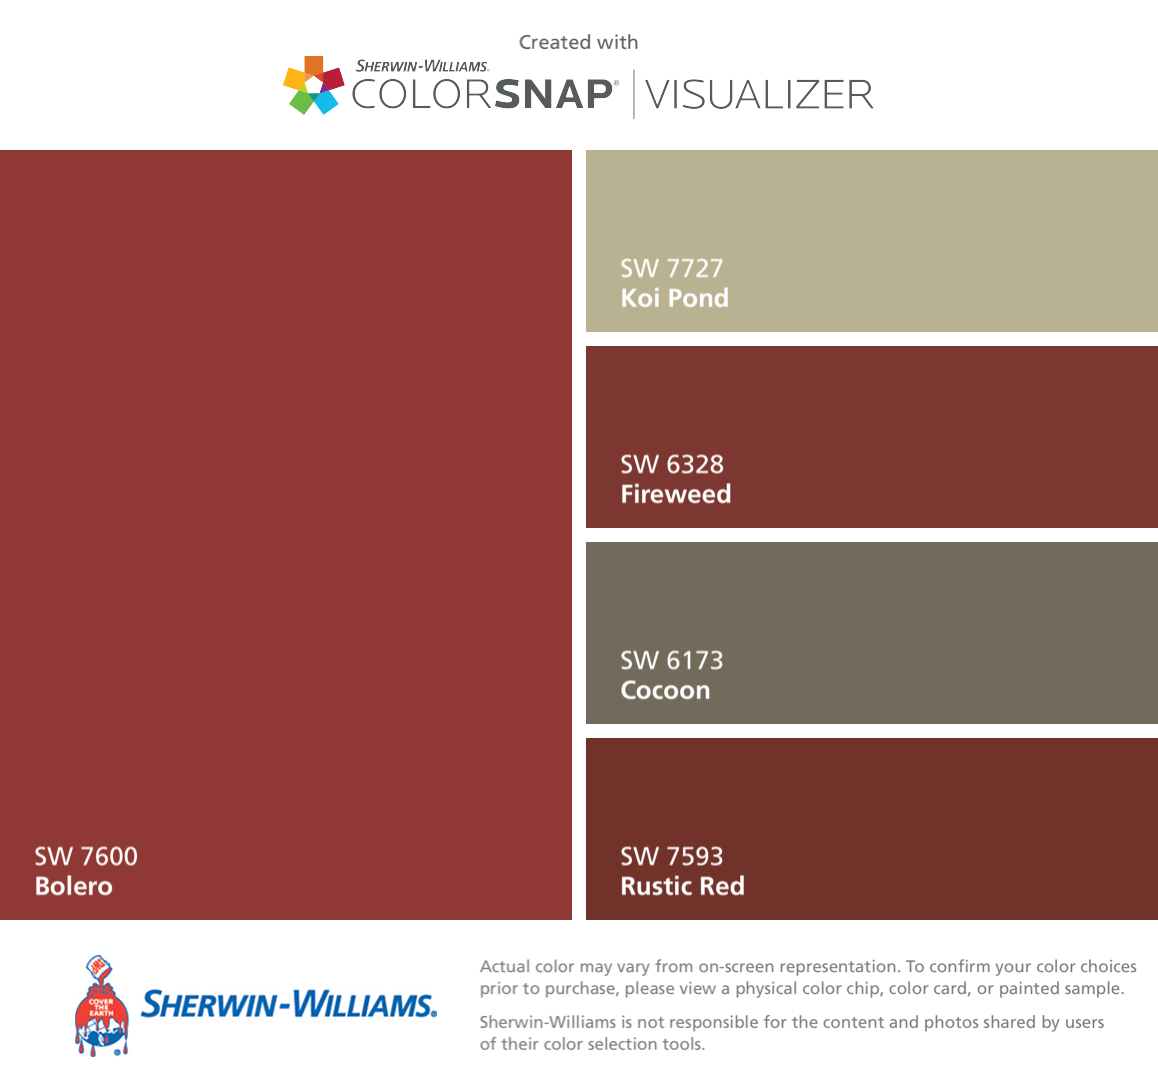 ColorSnapR Visualizer For IPhone By Sherwin Williams Bolero SW 7600 Koi Pond 7727 Fireweed 6328 Cocoon 6173 Rustic Red 7593